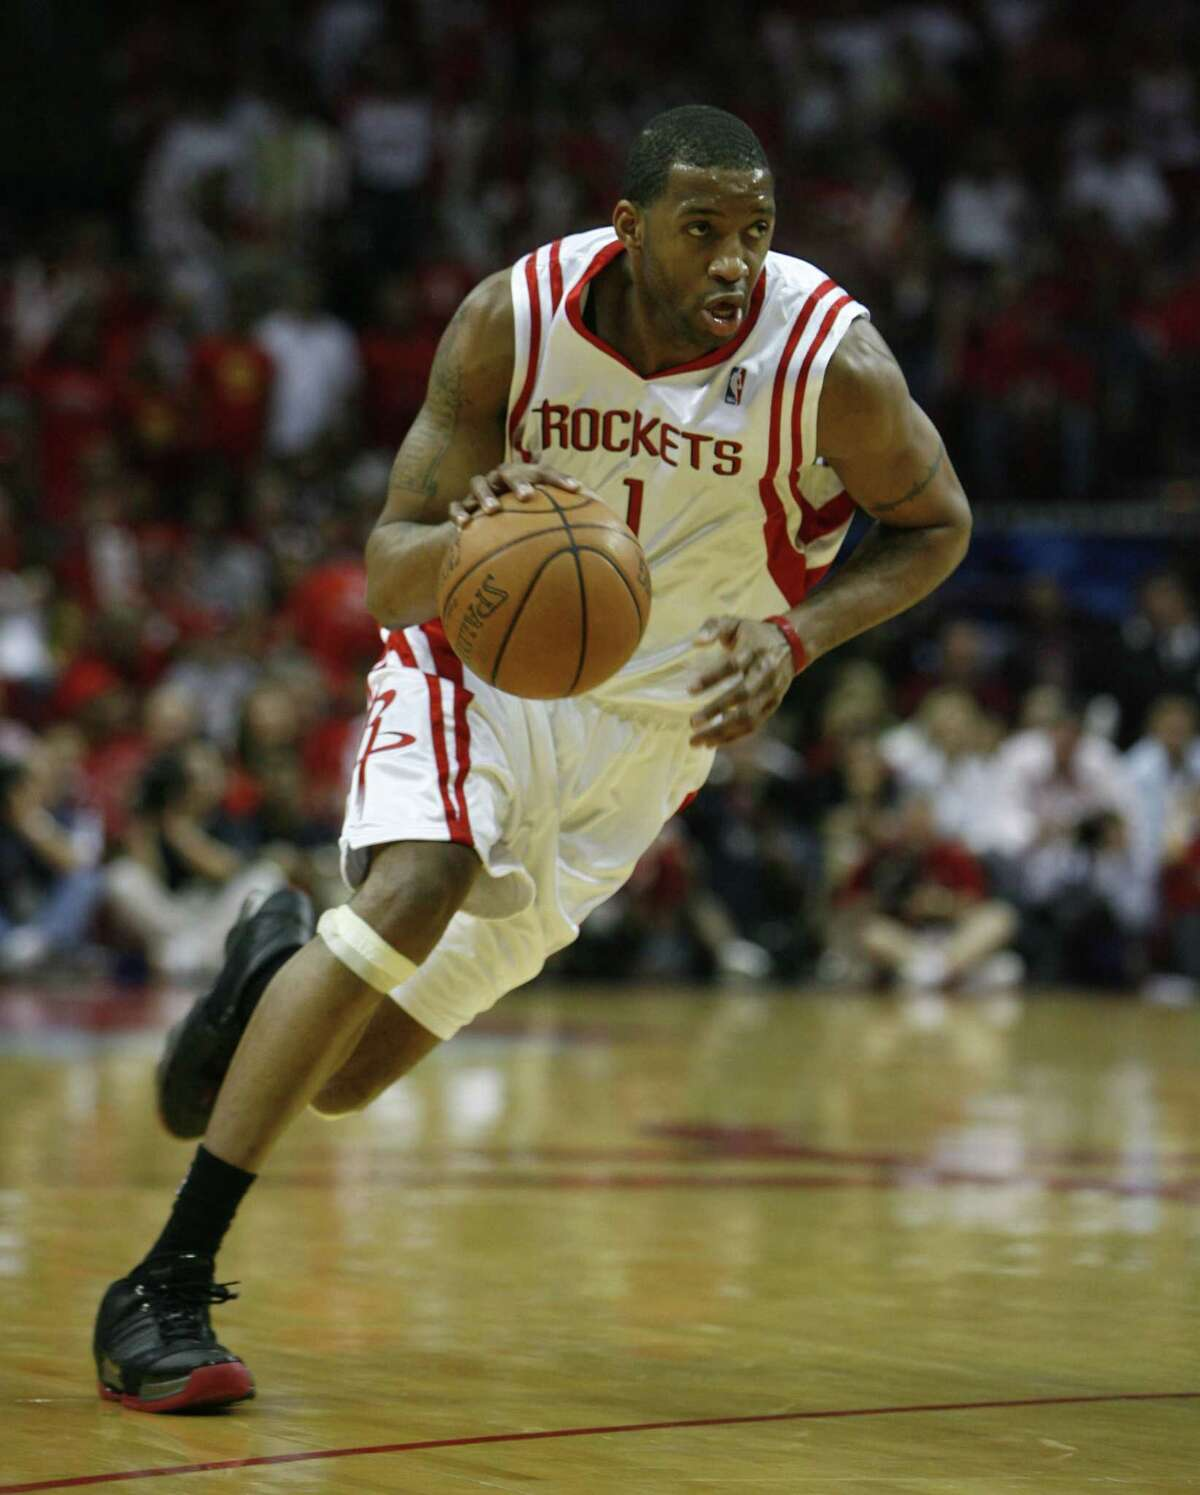 12. Tracy McGrady (2006-07) Honors:All NBA Second-Team Stats: 24.8 points, 6.5 assists, 5.4 rebounds, 23.2 Player Efficiency Rating, 8.6 Win Shares, 5.2Value Over Replacement Team: 52-30. Lost to the Jazz in the first round. Unfortunately, Tracy McGrady's best season as a Rocket saw Yao Ming play just 48 games but for that exact reason T-Mac had a season worthy of MVP consideration (McGrady finished sixth in the voting). Yao's unavailability left McGrady as the lone offensive weapon in Houston (unless you think 37 percent-shooting Rafer Alston needed more shots) and McGrady responded, carrying the team to the postseason. An early exit from the playoffs and missing 11 games was the deciding factor compared to No. 11 on the list.